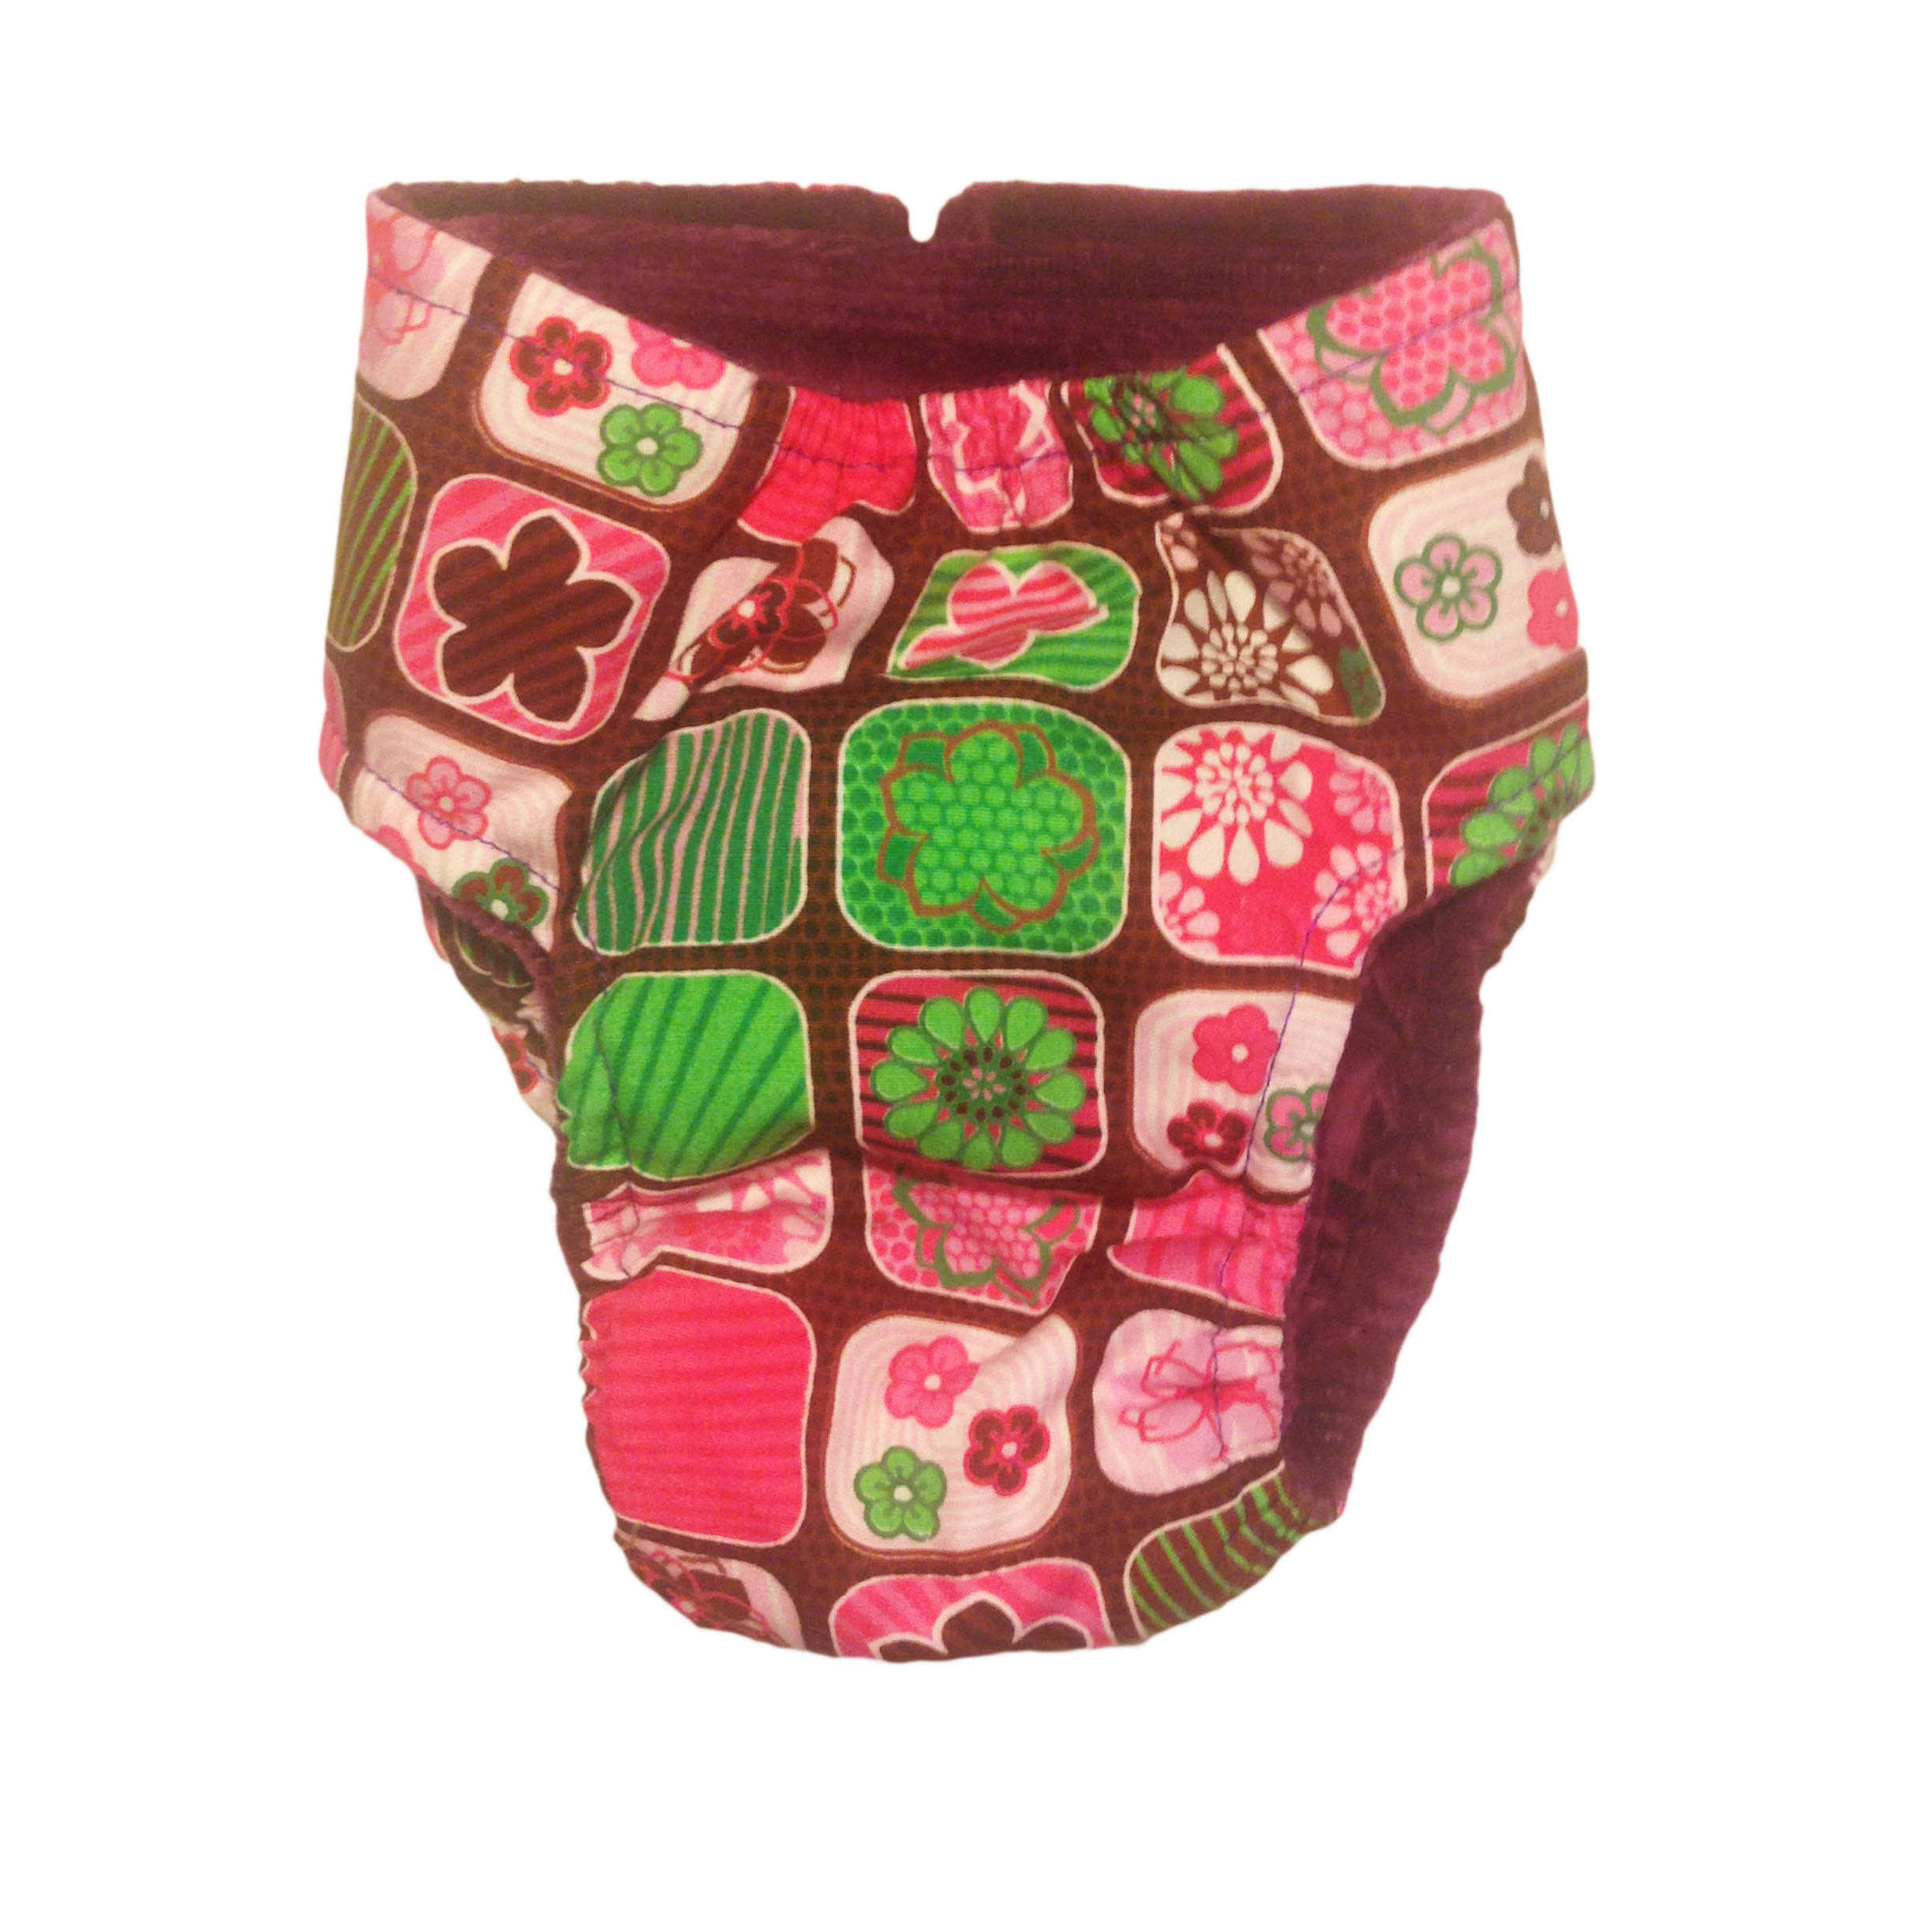 Barkertime Pink Flower Window Washable Cat Diaper Made